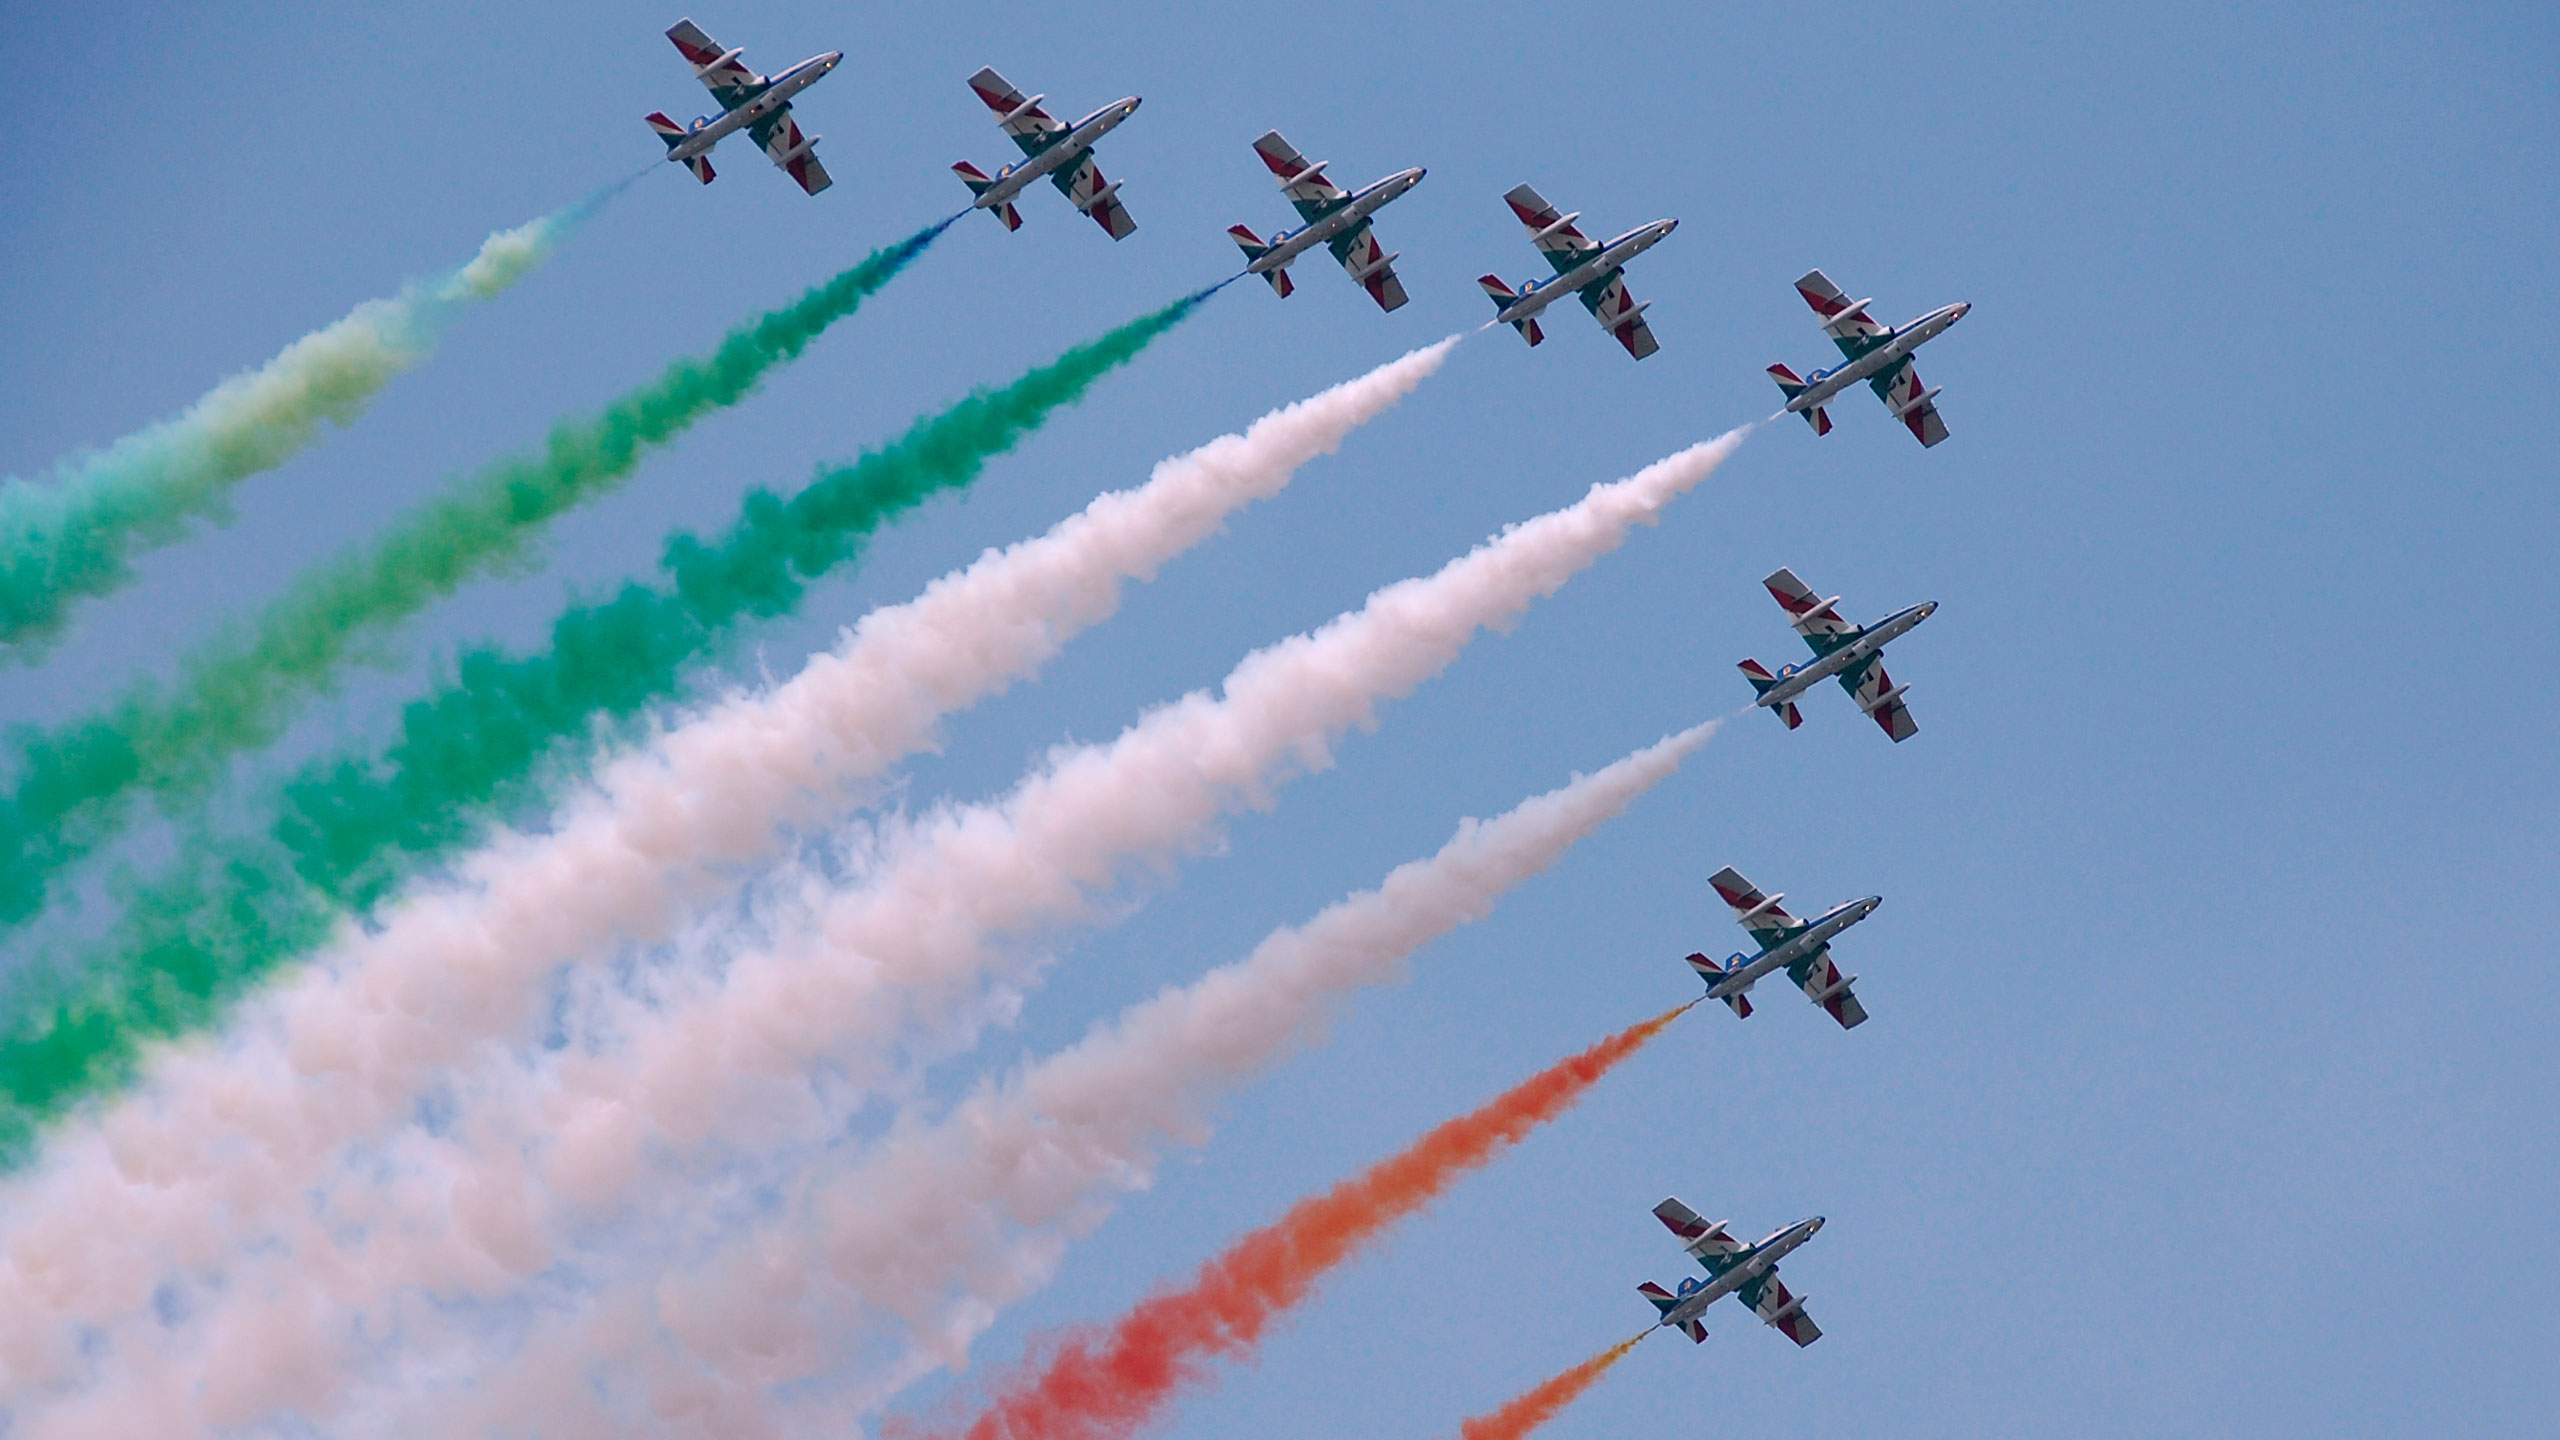 June 2th The National Celebration Of The Italian Republic